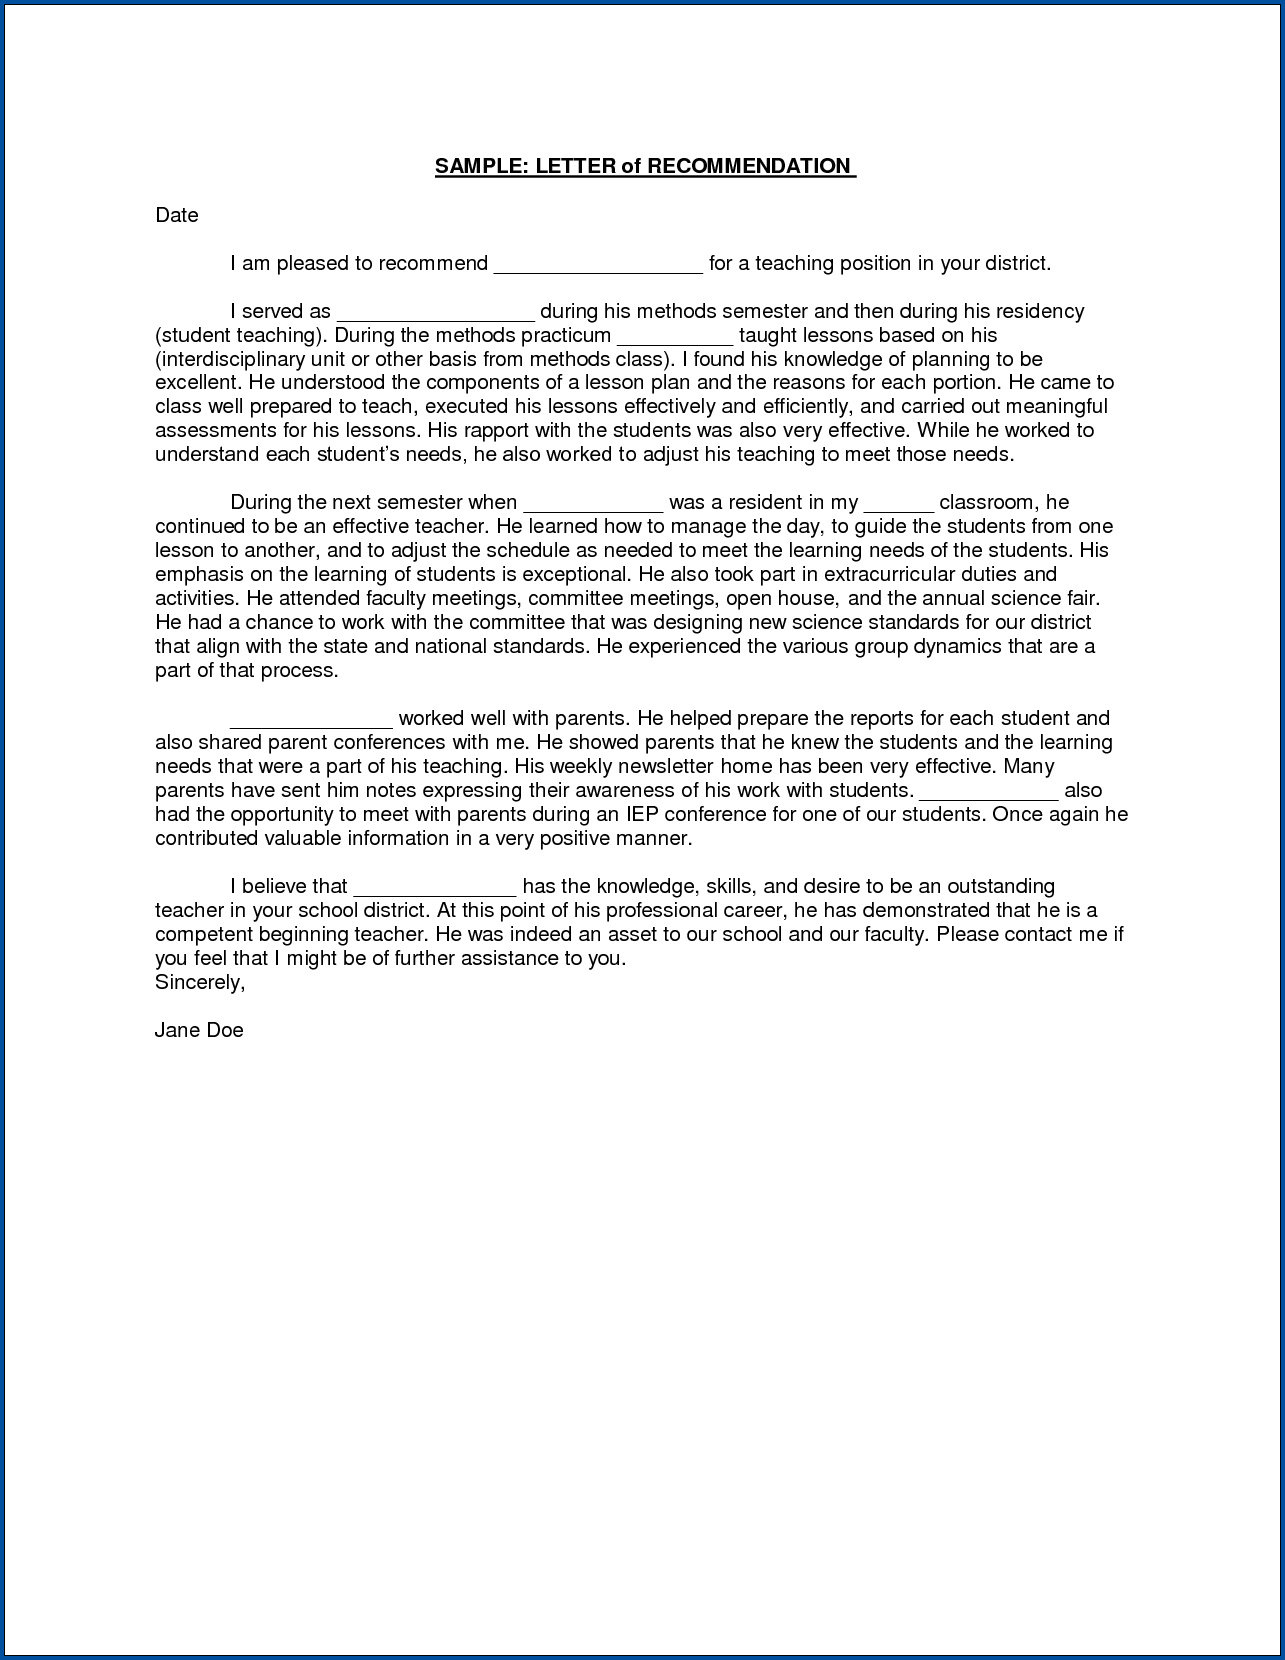 Letter Of Recommendation For Teaching Position from www.templateral.com